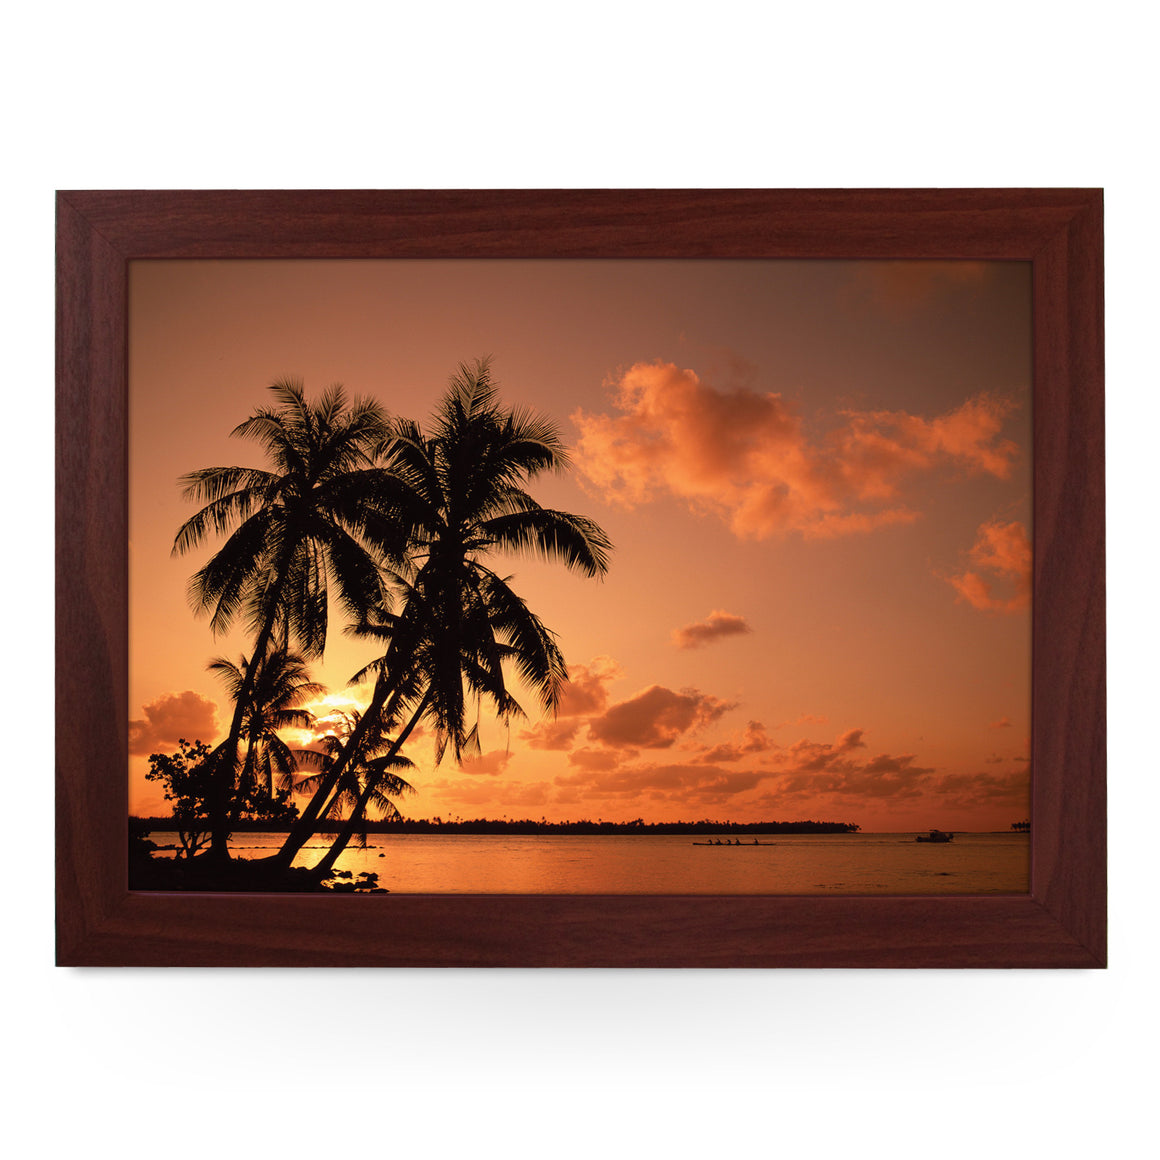 Palm Tree Silhouette At Sunset Lap Tray - L0362